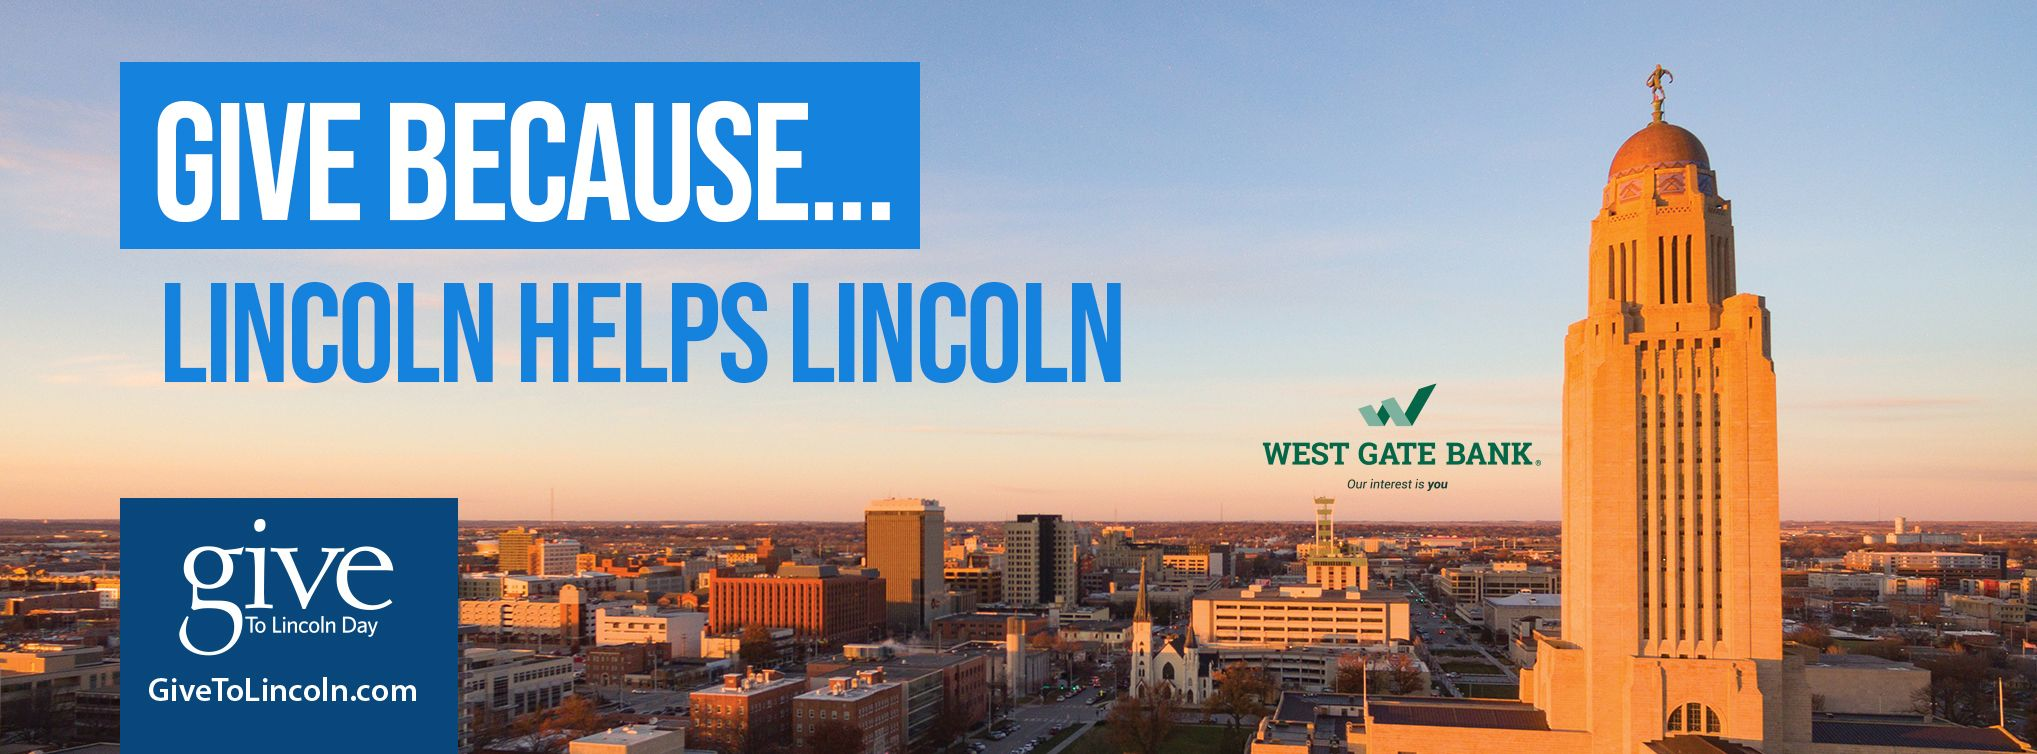 Give to Lincoln Day logo